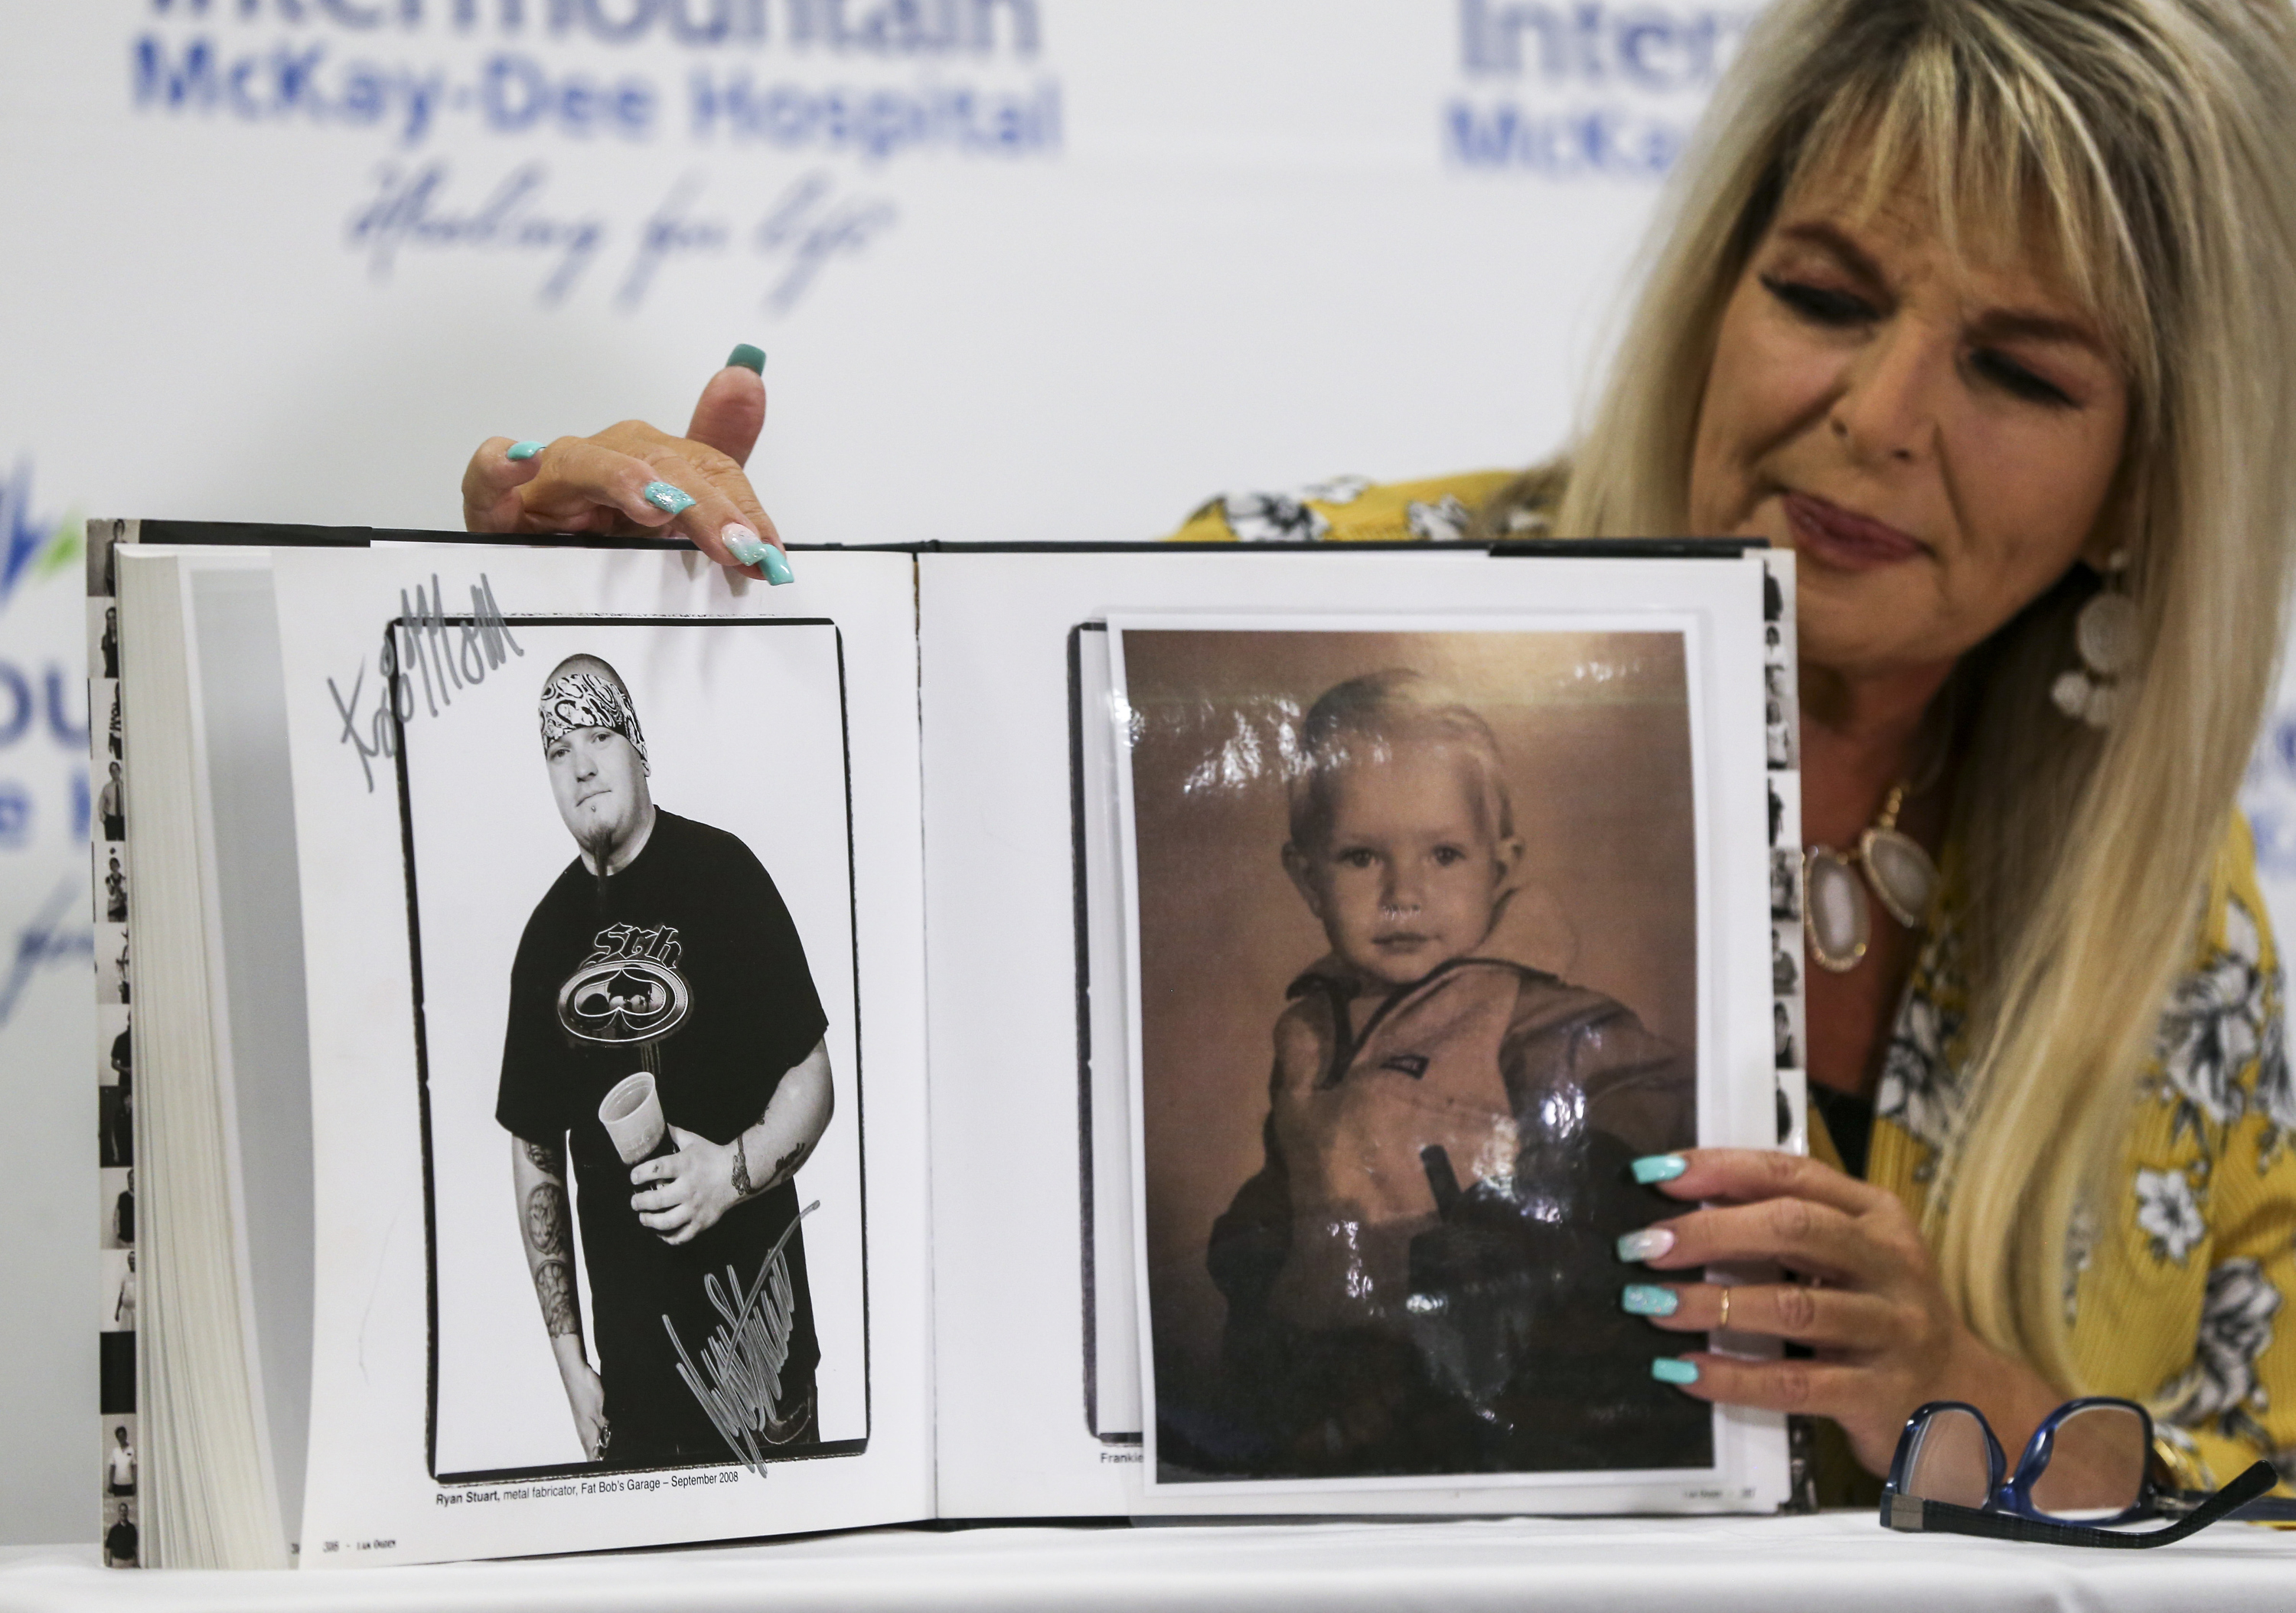 Gina Vodopich looks at photos of her son, Ryan Stuart, during a press conference called for the first case of West Nile virus in Weber County this year at the Intermountain McKay-Dee Hospital in Ogden on Tuesday, Sept. 10, 2019. Stuart has been in the hospital for nine days, most of those spent in the ICU, but was moved out of intensive care recently. He isn't expected to return home until after the New Year.